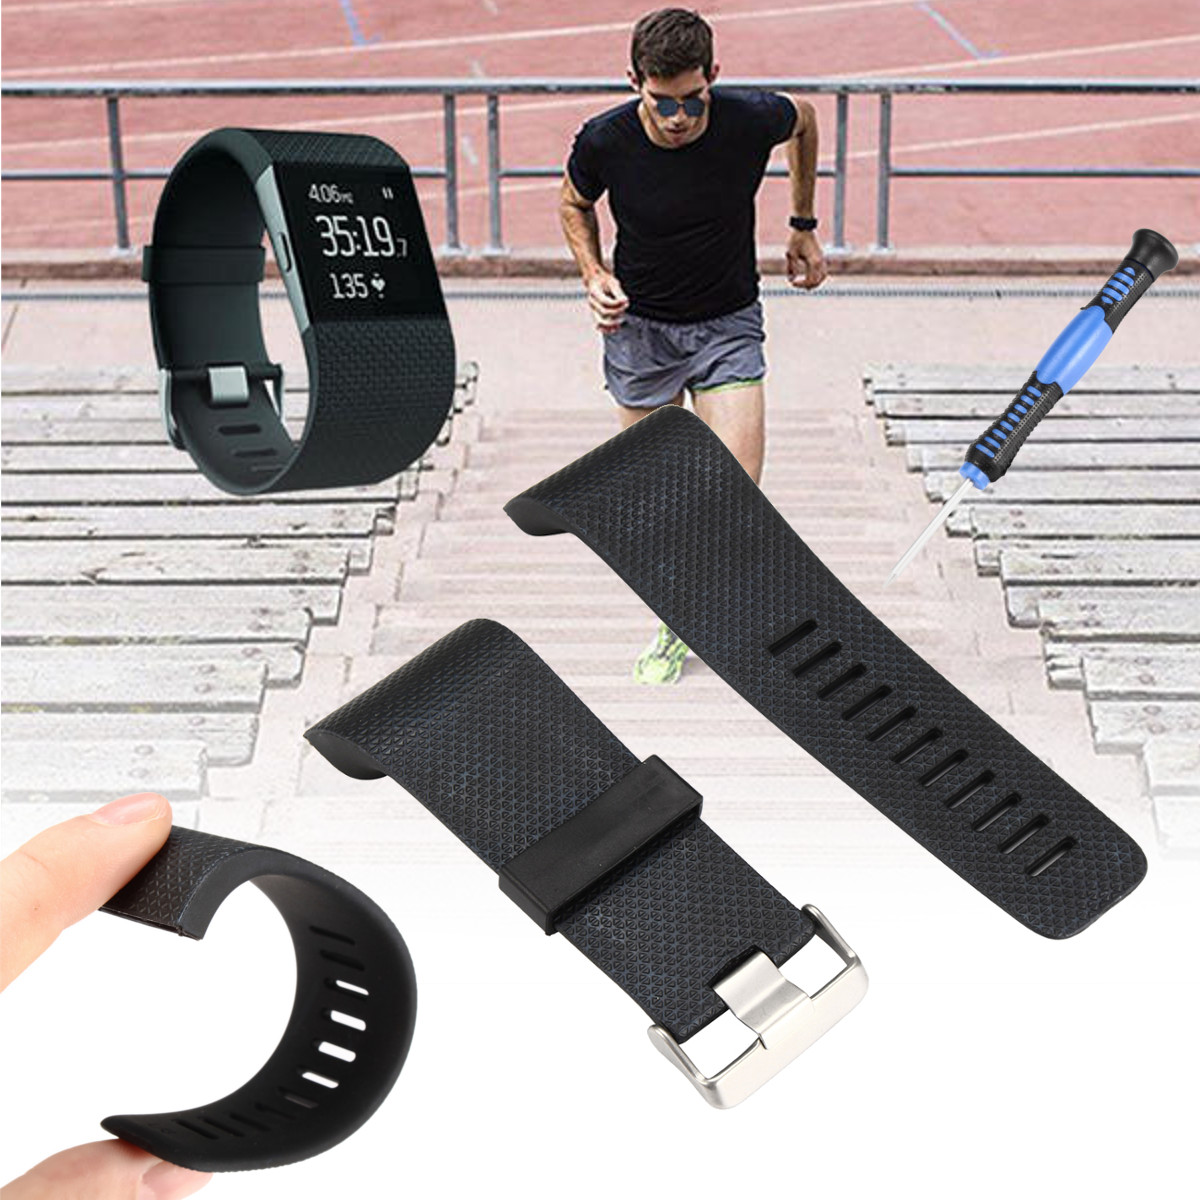 Replacement Watch Band Strap Kit for Fitbit Surge Activity Tracker Black Lager For Fitbit Surge